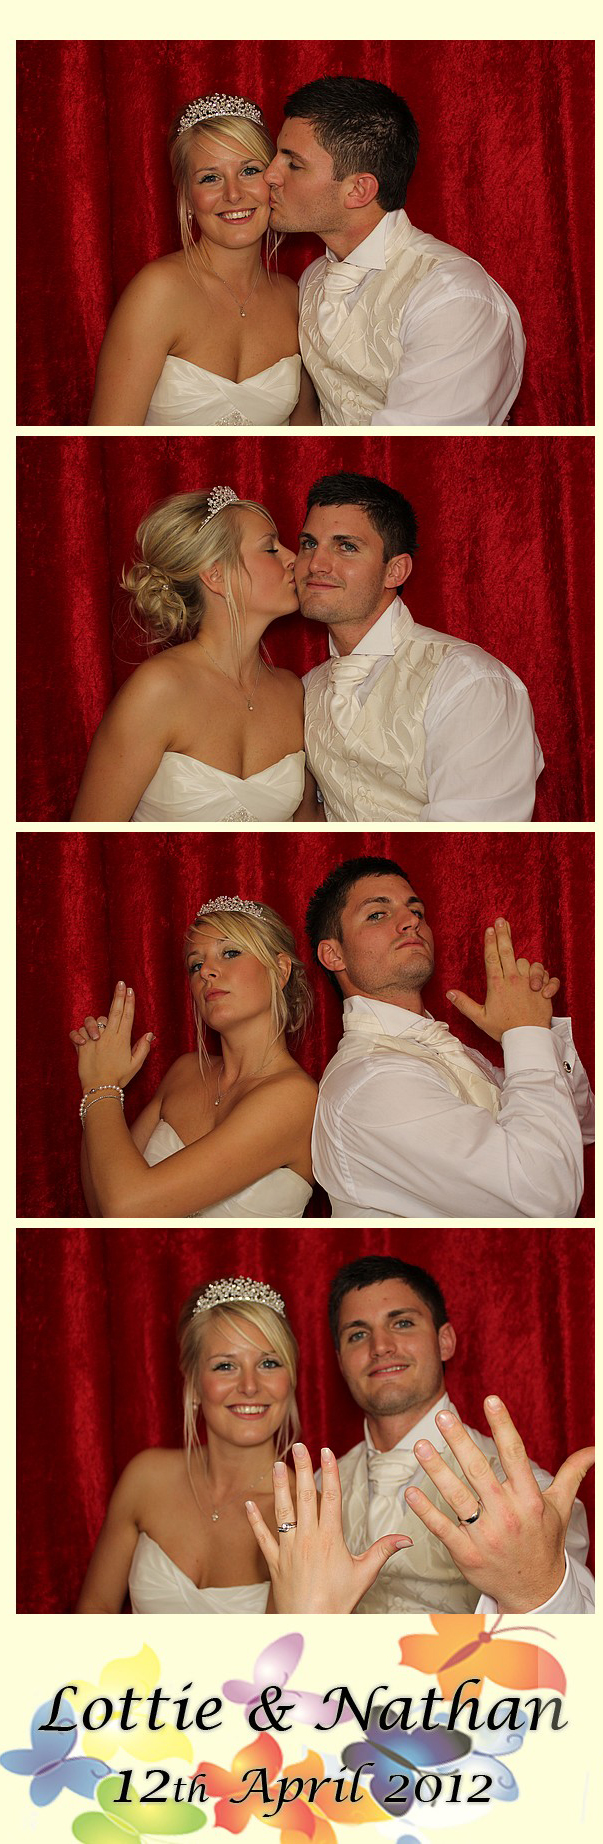 Bride and Groom in a Smiley Booth Photo booth